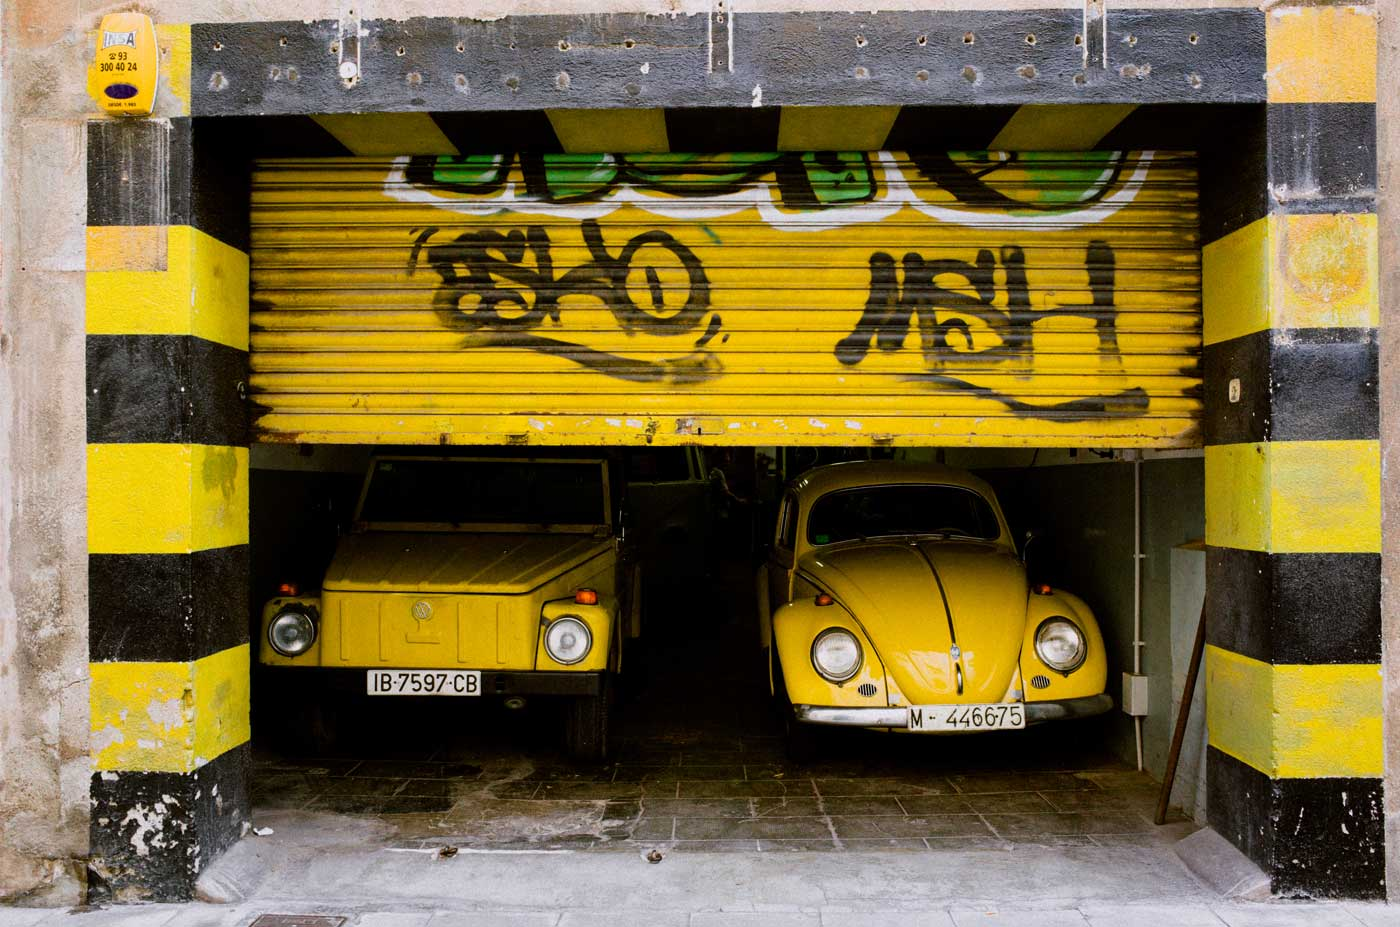 ricoh-gr-II-III-review-camera-point-and-shoot-28mm-yellow-beatles-car-vw-volkswagen-stripe-spain-barcelona-street